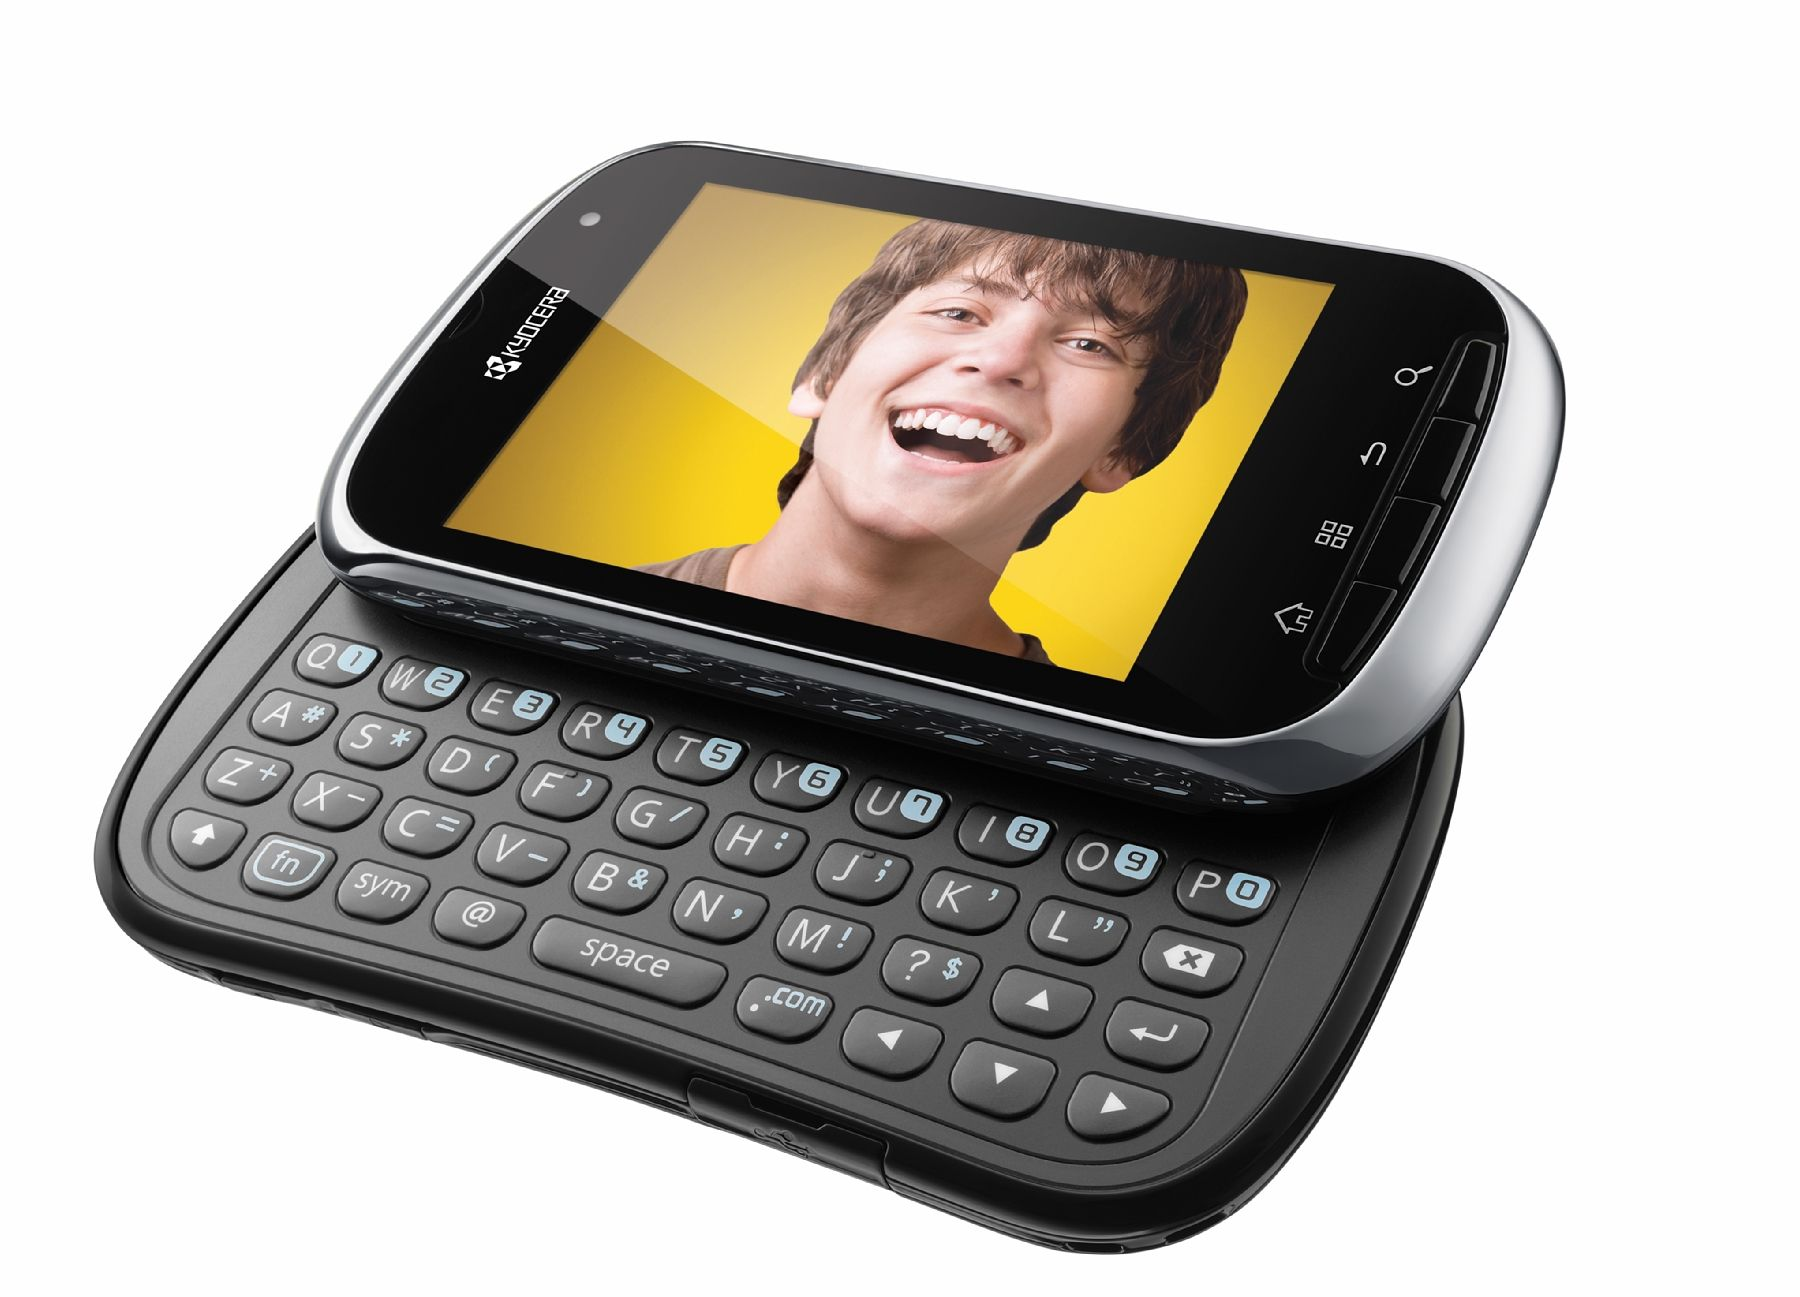 kyocera milano another great smartphone for seniors this rh pinterest com Sanyo Cell Phone Models Sanyo Cell Phone Models